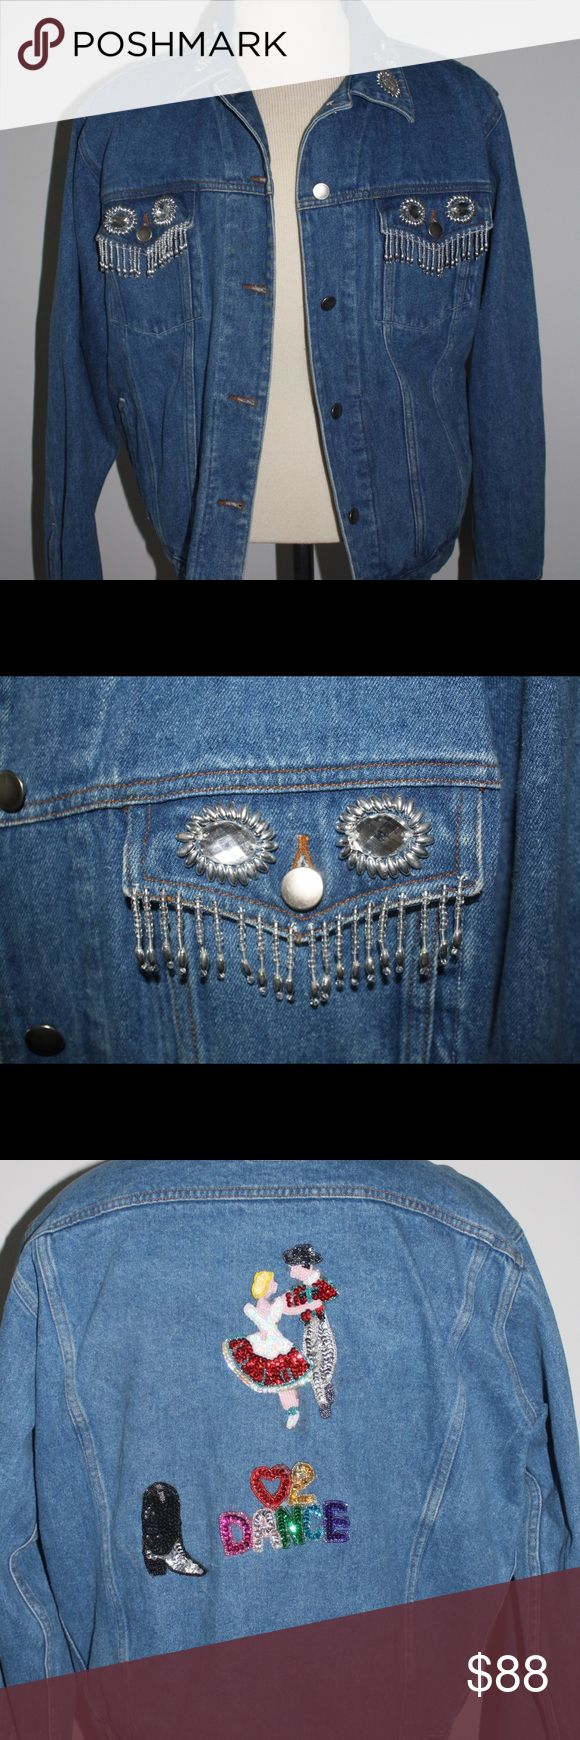 Embellished Denim Jacket Vintage Embellished denim jacket. This piece was obviously made with love and craftsmanship. I fell in love with this jacket when I saw it. Hopefully it can find a home that will absolutely love it too. Jackets & Coats Jean Jackets